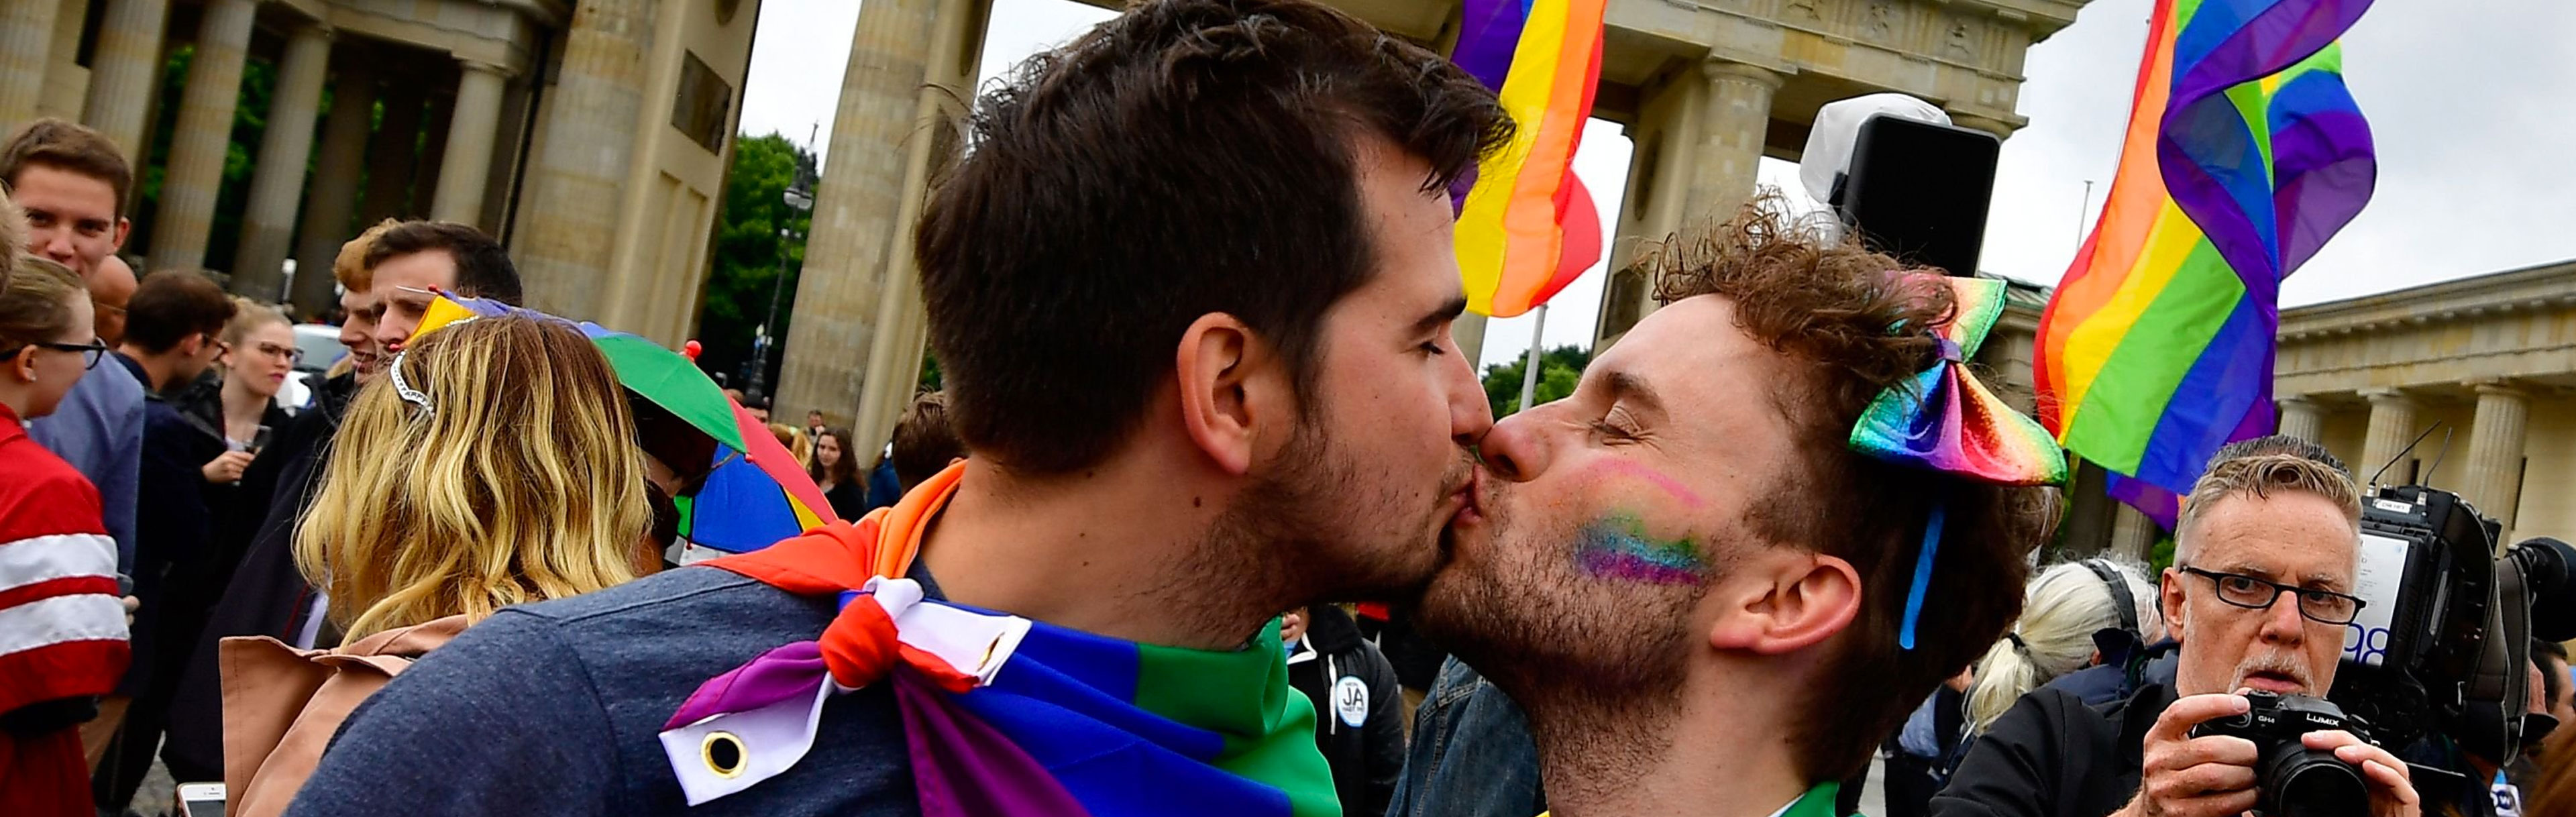 There's one thing keeping gay republicans in the closet